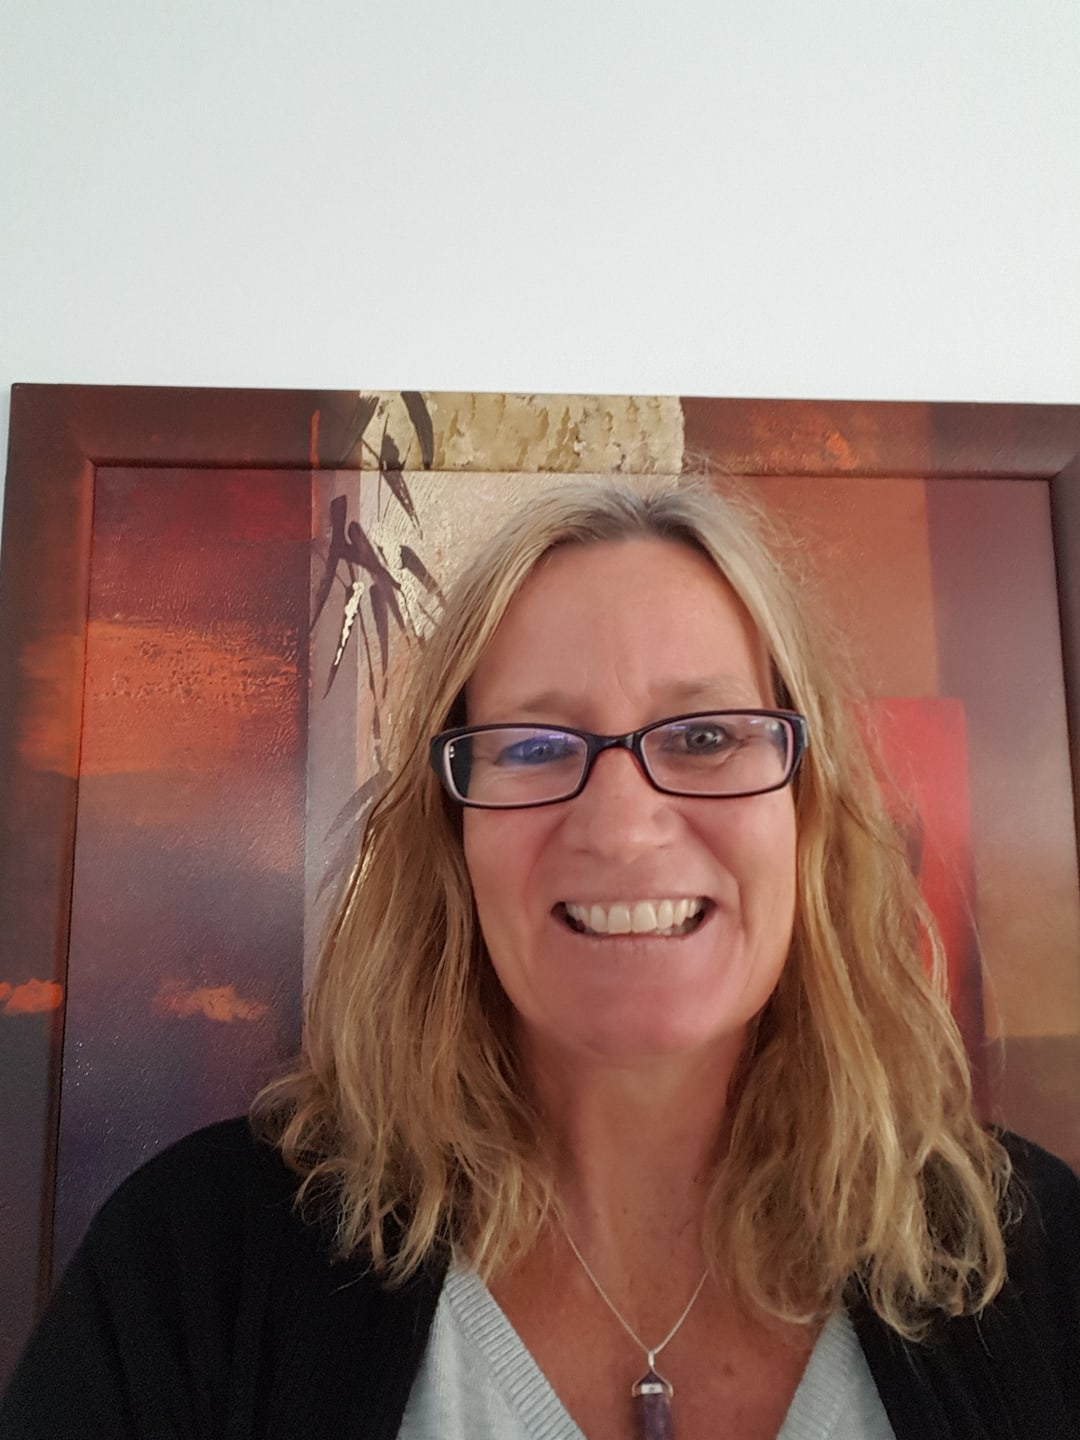 Martina Rabbani - * Brennan Science Practitioner ( Holistic wellness Practitioner) & ( Bachelors Degree of Science in Healing)* Reiki Master ( Certificates / Reiki 1, Reiki 11 and Reiki 111)* Massage Therapist ( Combination of Swedish, Acupressure, Relaxation ) ( Diploma)* Angel Tarot Card Reader ( Angel Tarot Card Readers Course from Doreen Virtue) ( Cerificate)* Life Coach* Australian Bush flower Essence Consultant ( Ian White) ( Certificate)* Young Living Wellness Consultant ( 100% pure therapeutic grade essential oils)Martina is all about the